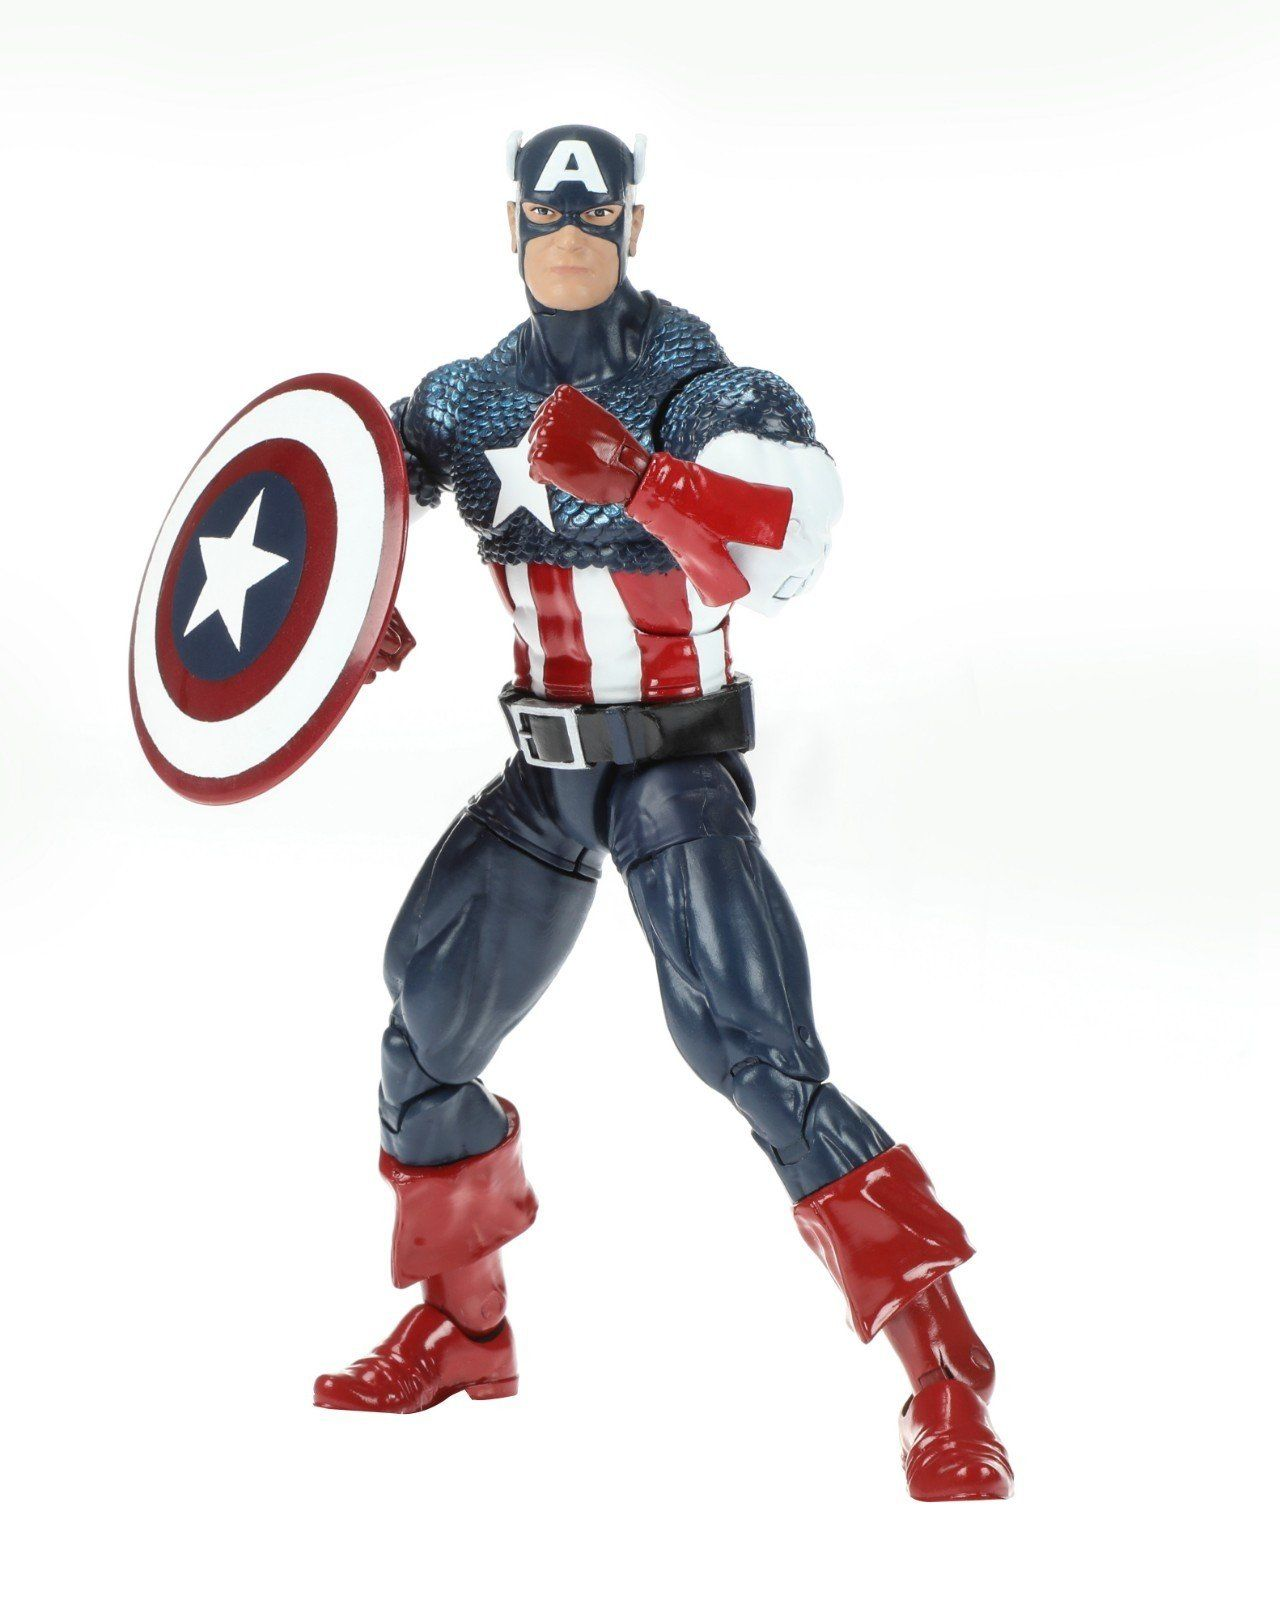 In Stock AVENGERS Infinite Action figure wave 1 CAPITAN AMERICA